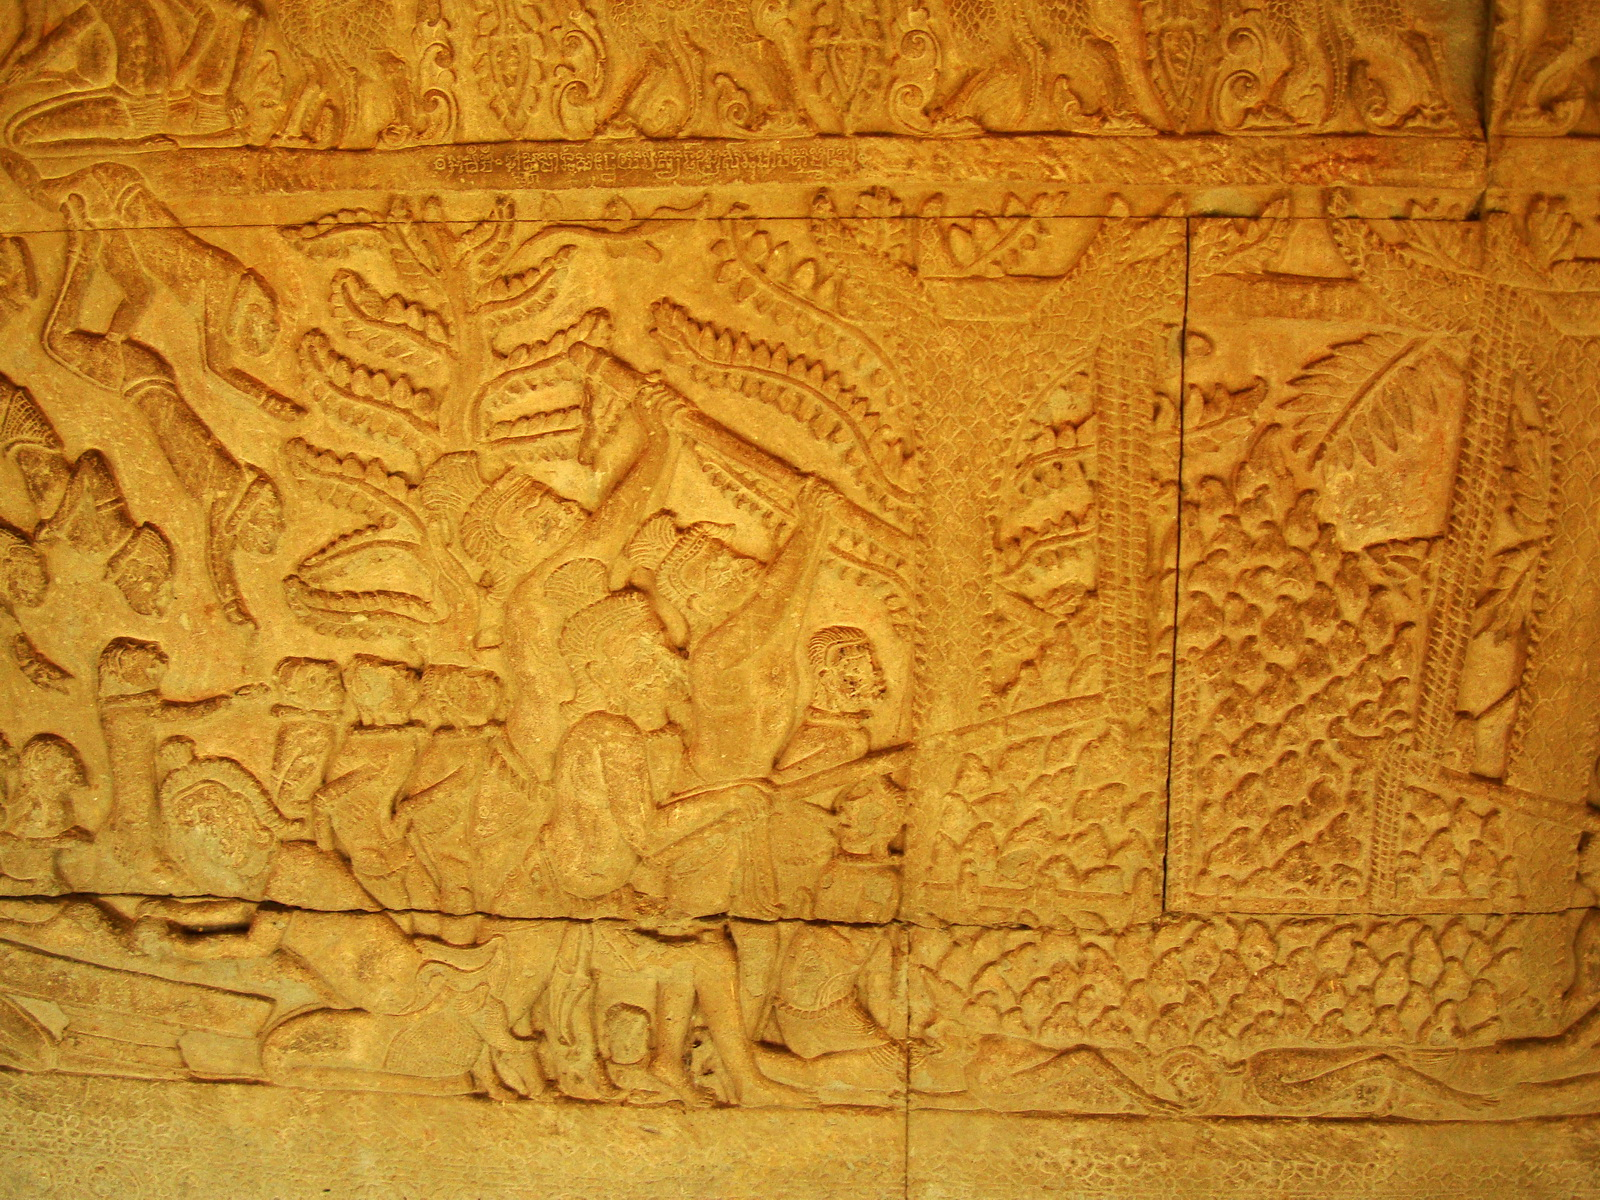 Angkor Wat Bas relief S Gallery E Wing Heavens and Hells 68